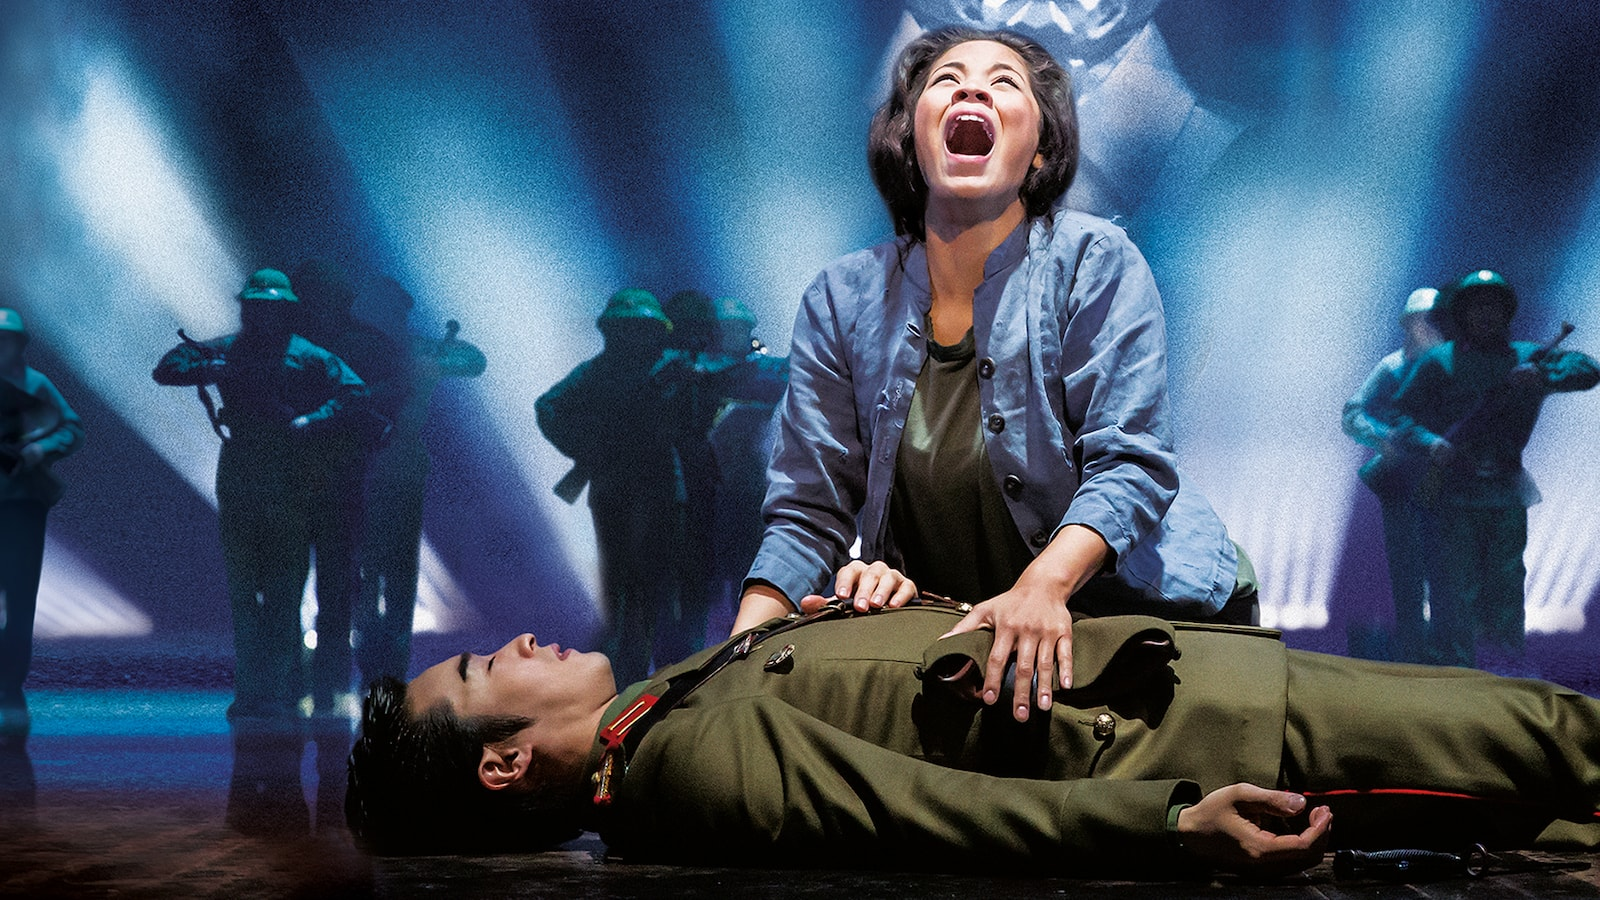 miss-saigon-25th-anniversary-performance-2016